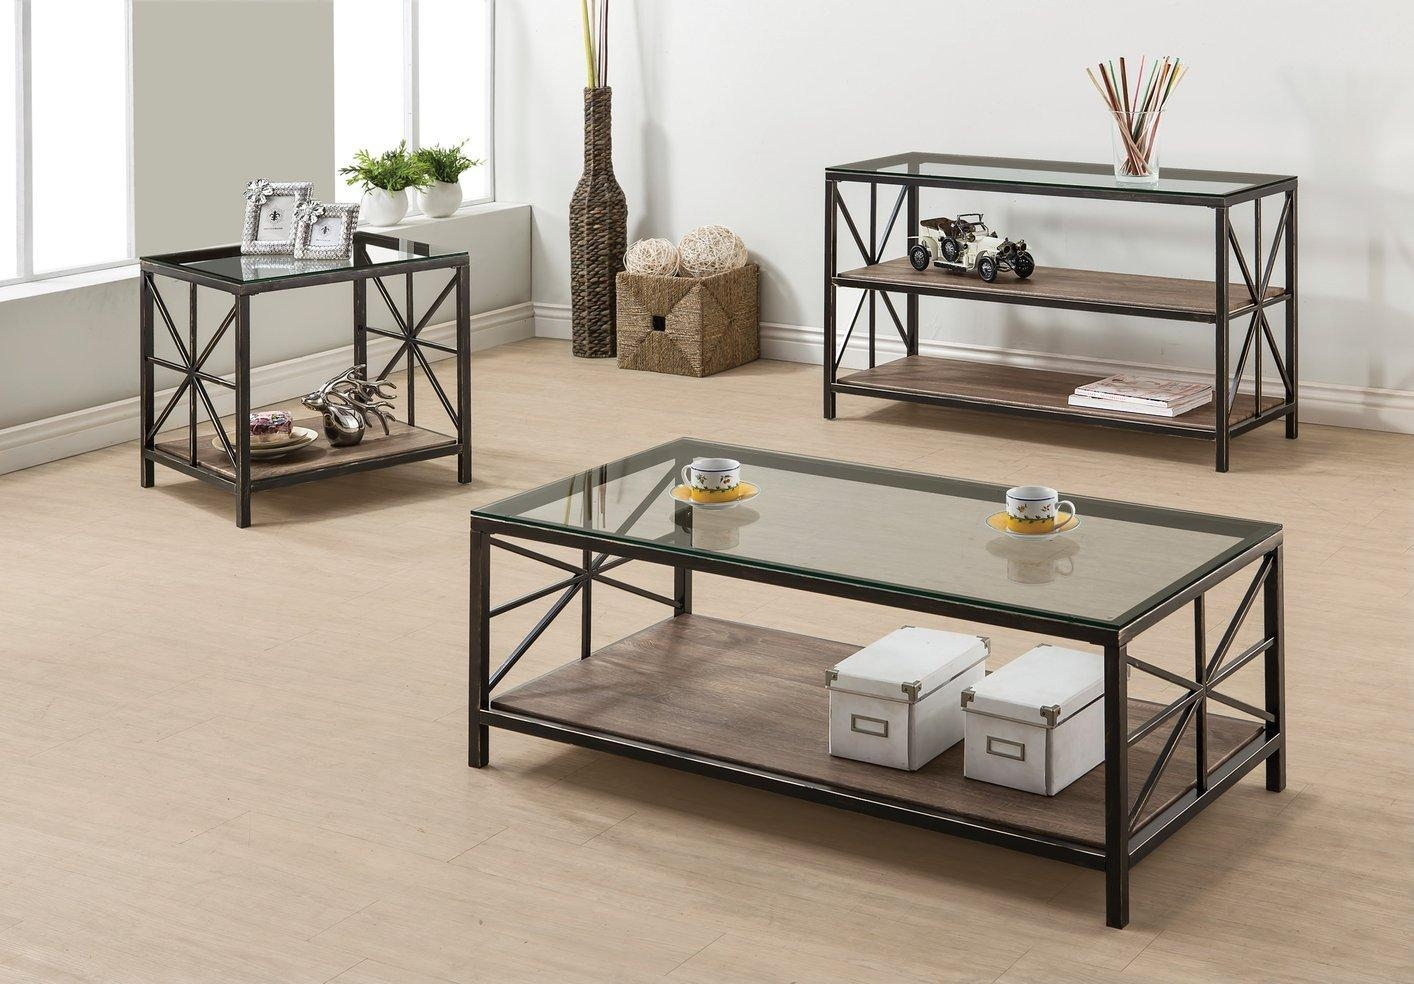 Glass Sofa Table Room | Med Art Home Design Posters Throughout Metal Glass Sofa Tables (Image 6 of 22)